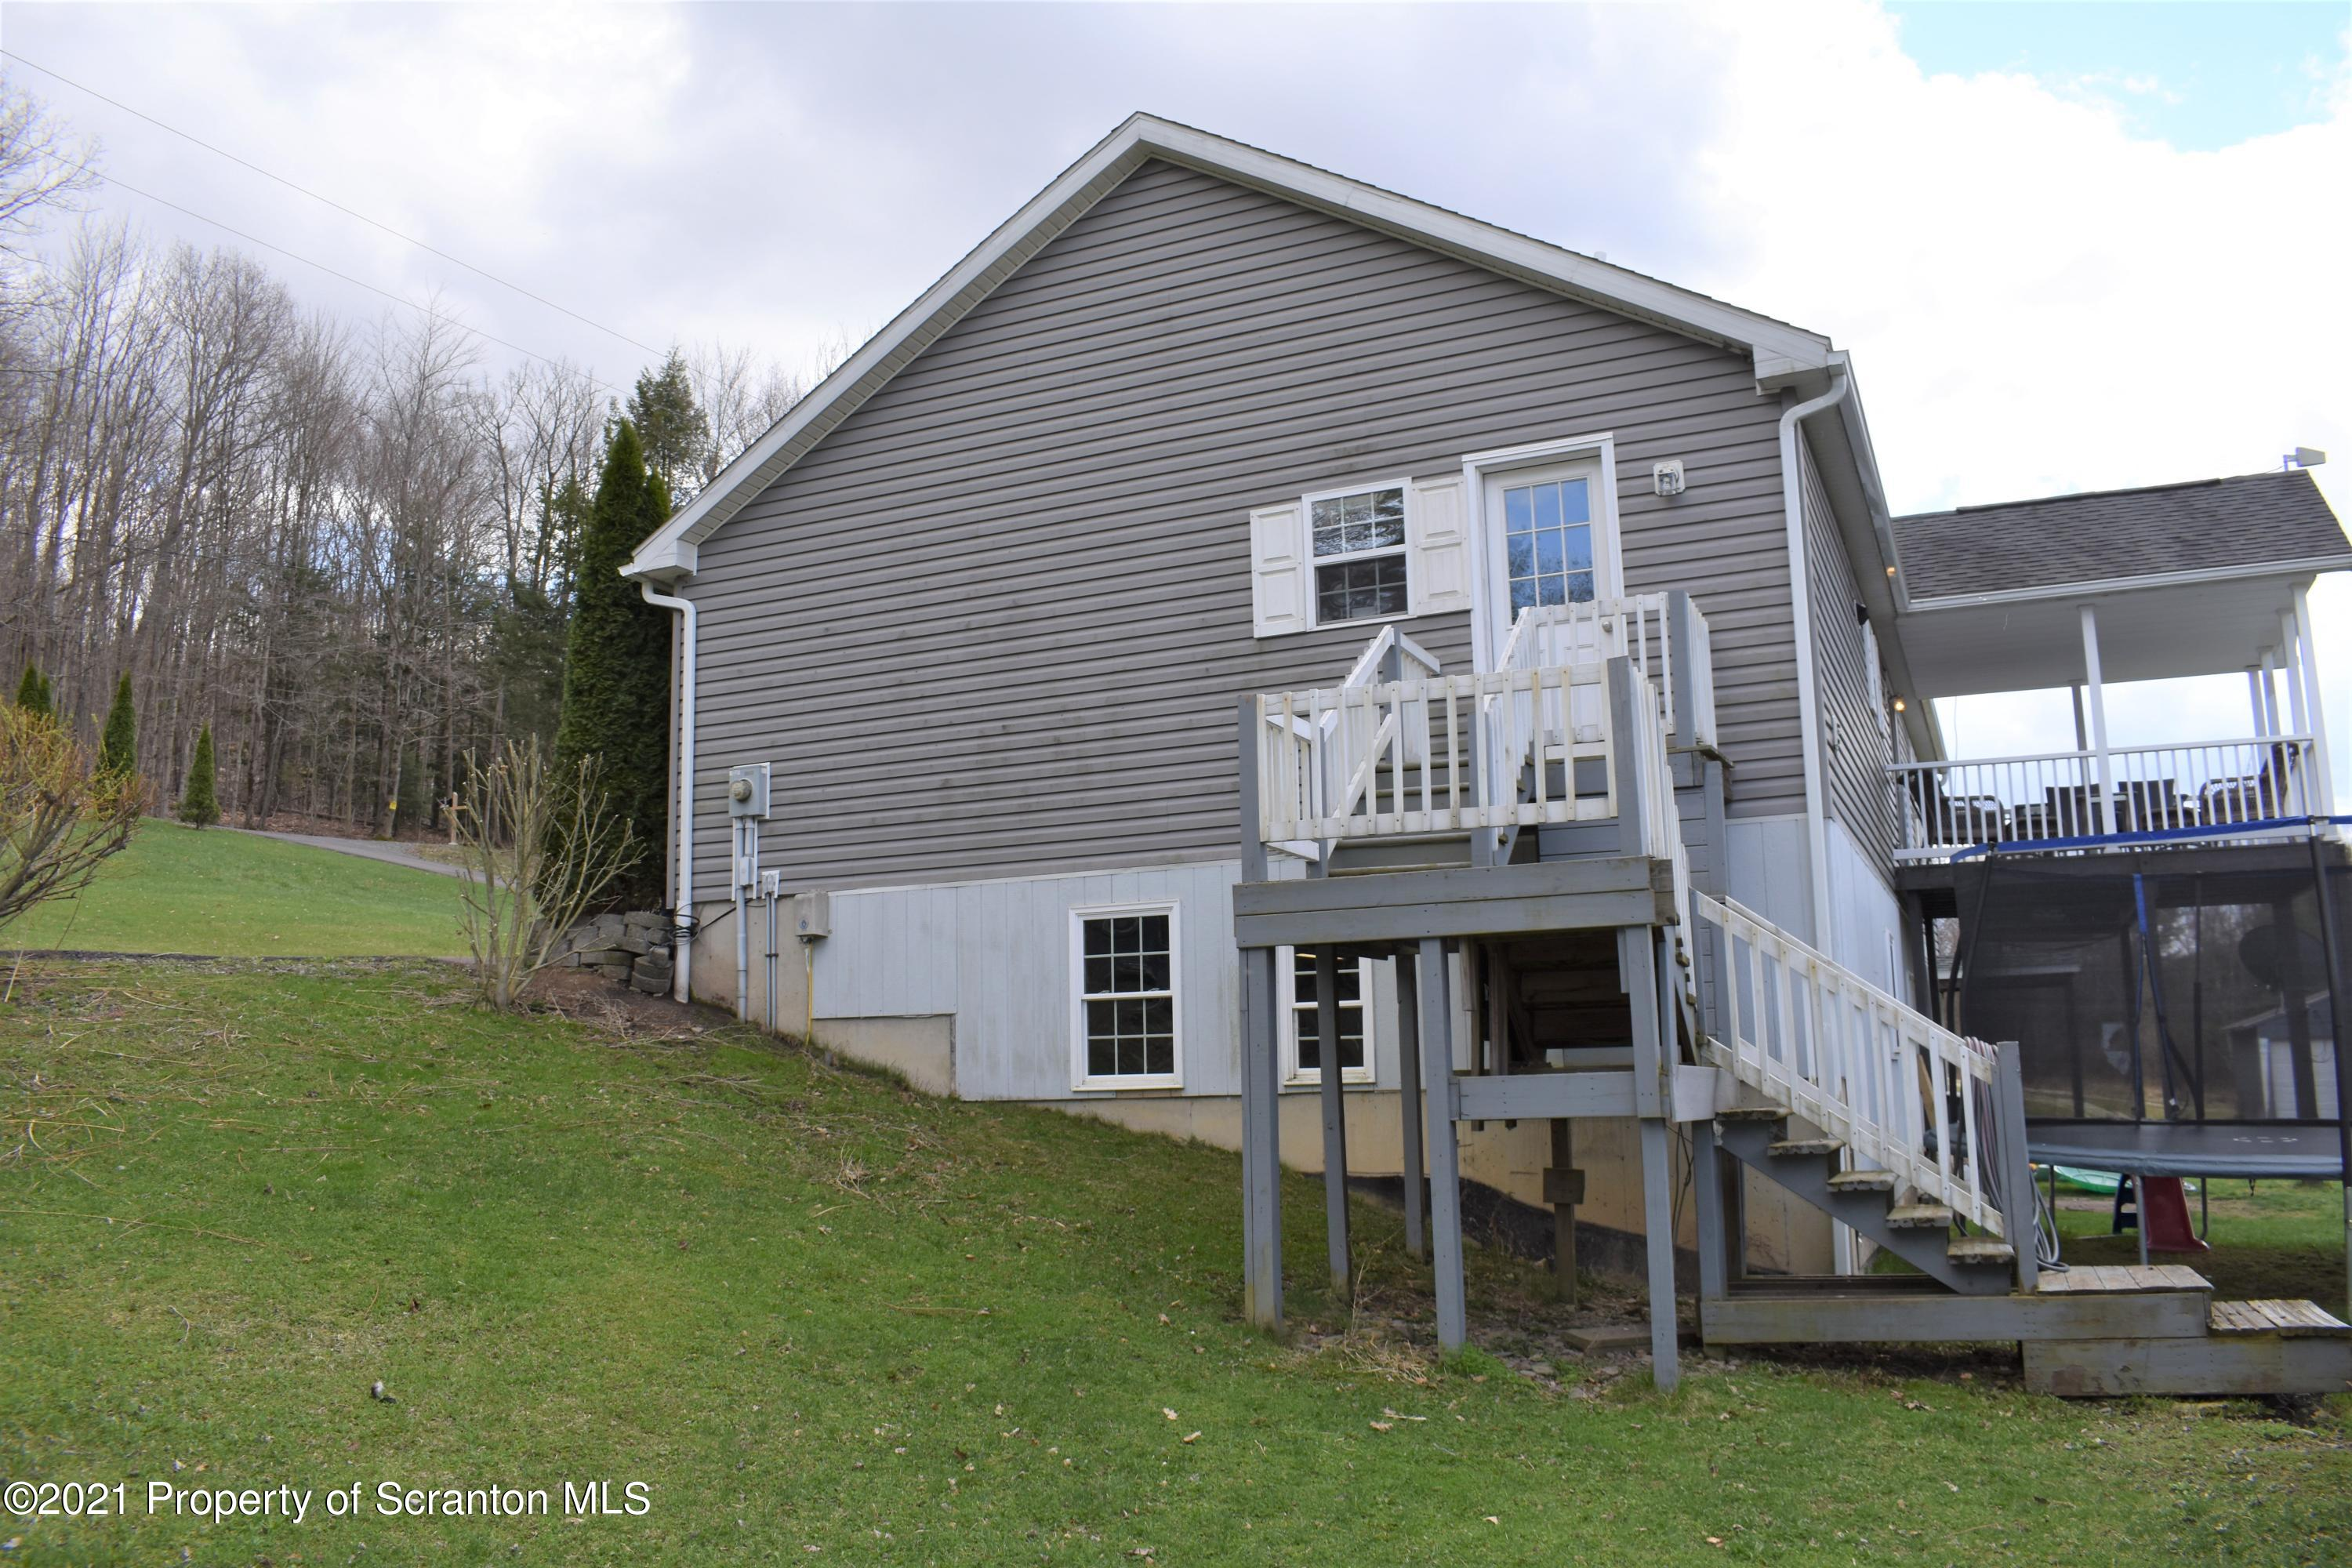 429 Phillips Rd, Windsor, New York 13865, 3 Bedrooms Bedrooms, 6 Rooms Rooms,2 BathroomsBathrooms,Single Family,For Sale,Phillips,21-1352